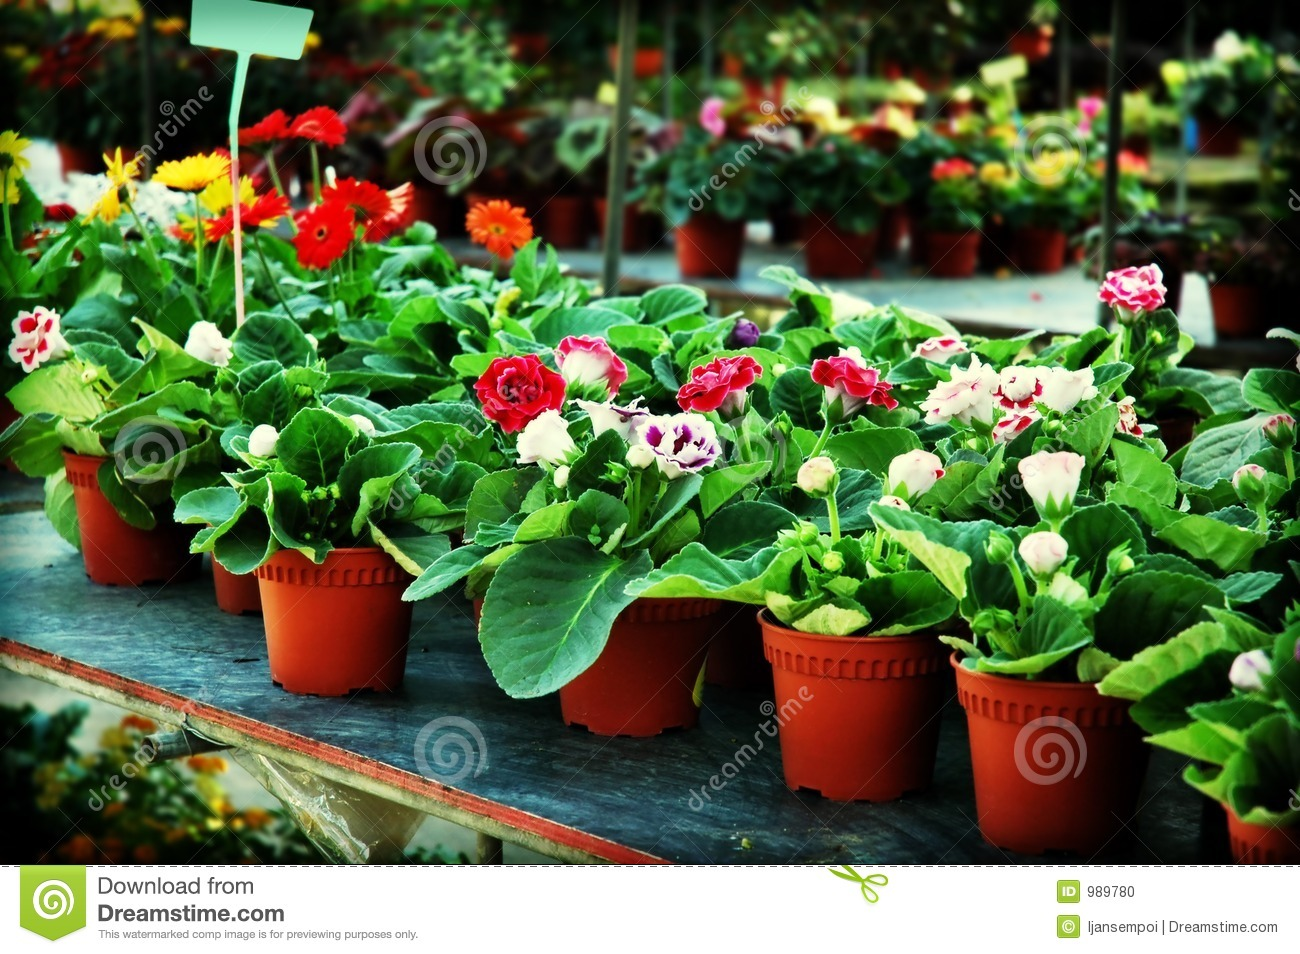 Plants for sale stock photo image 989780 for Plants for sale